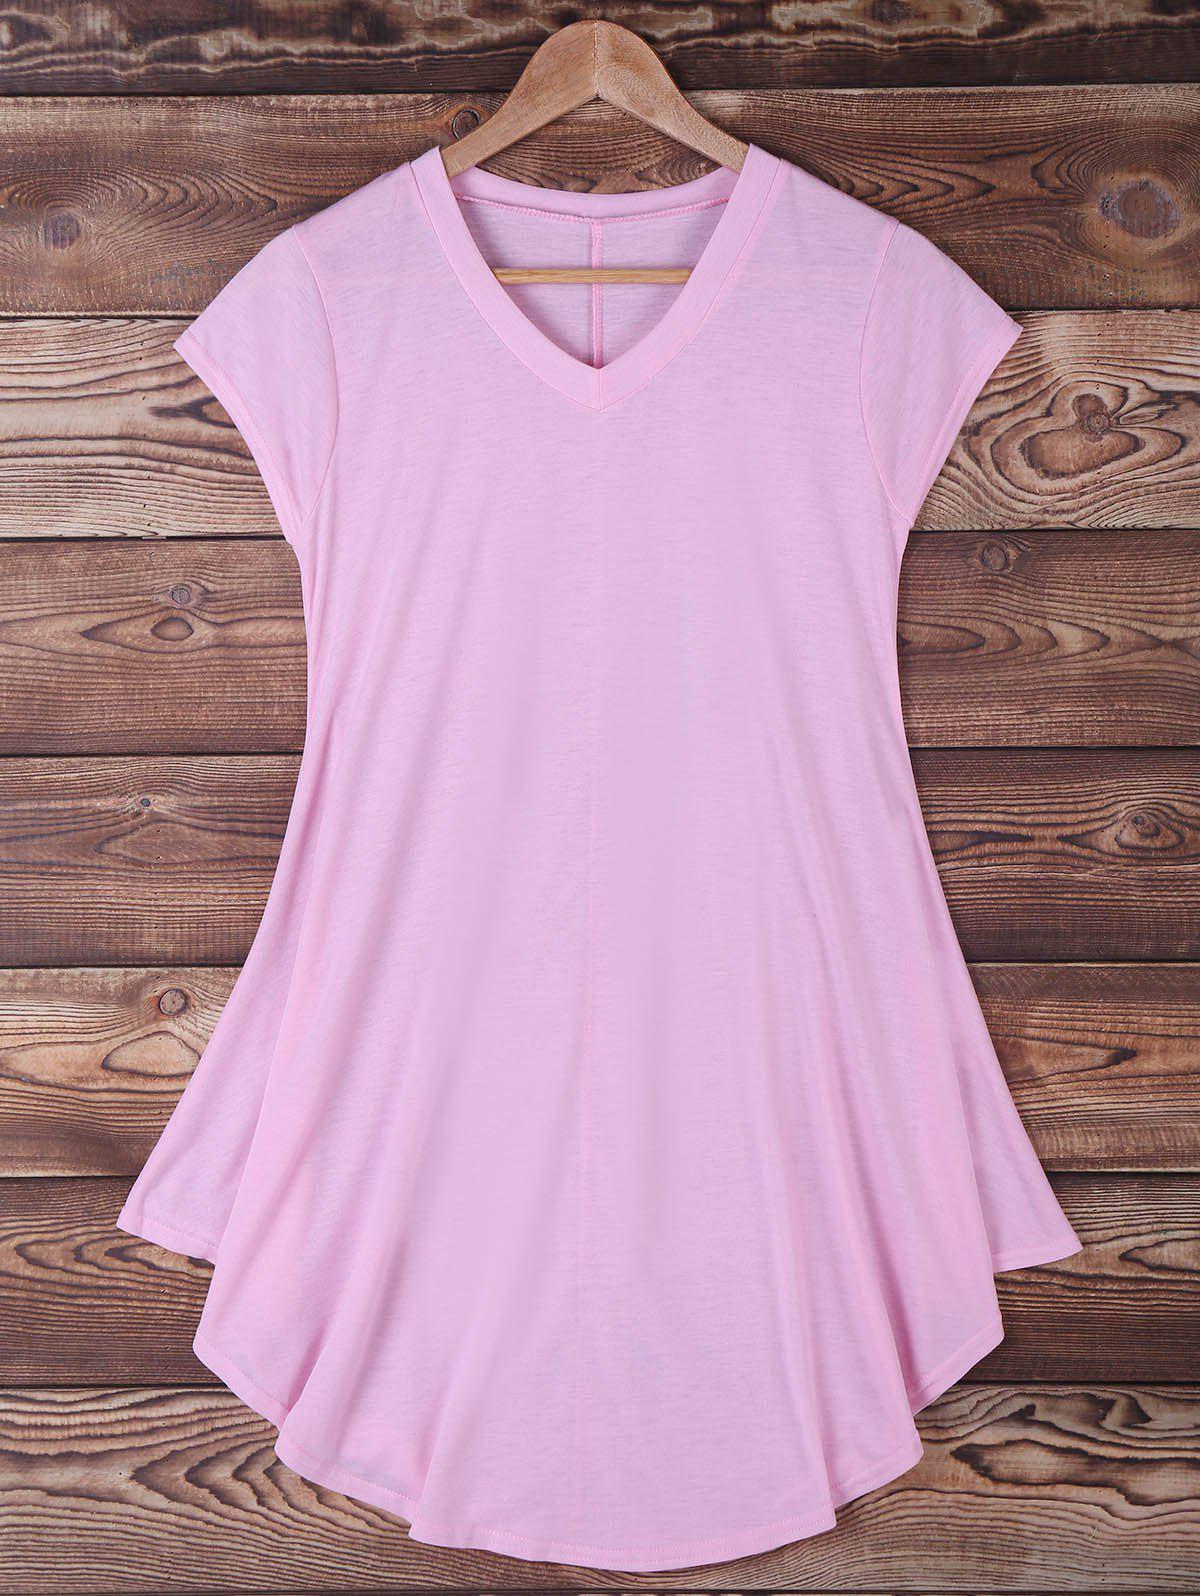 Cap Sleeve Mini Dress - PINK S